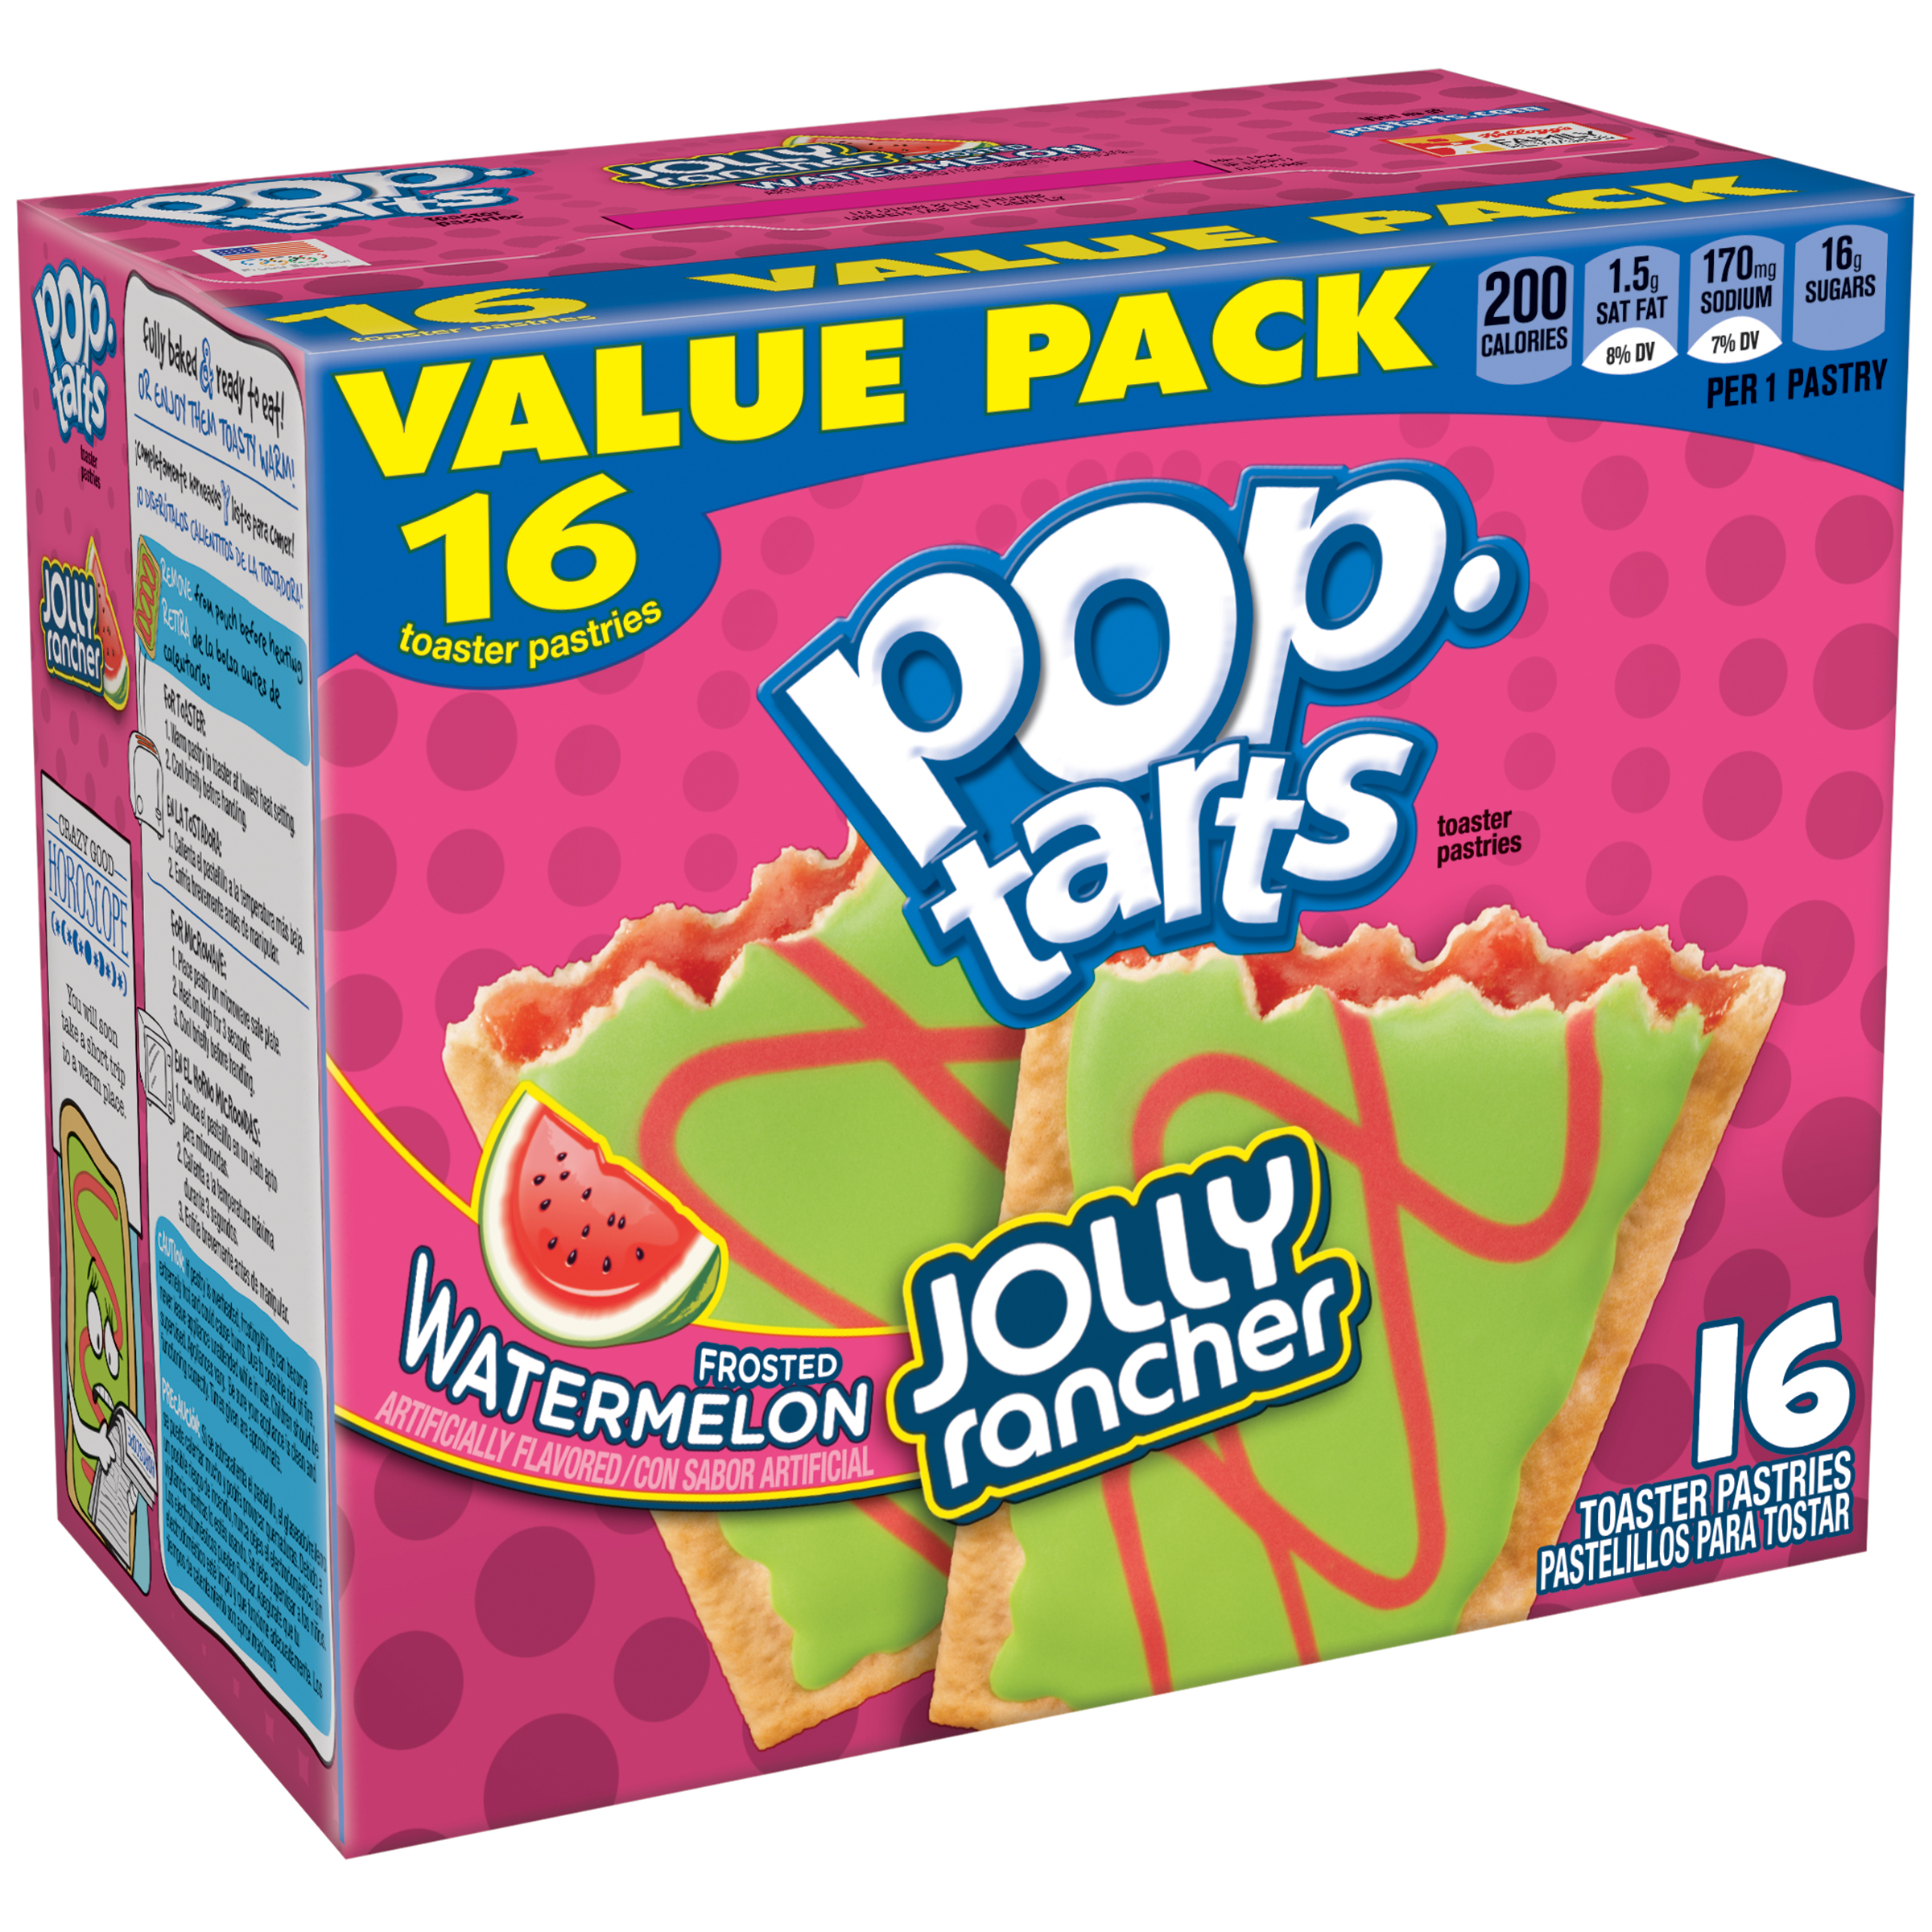 Kellogg's Pop-Tarts Jolly Rancher Frosted Watermelon Toaster Pastries